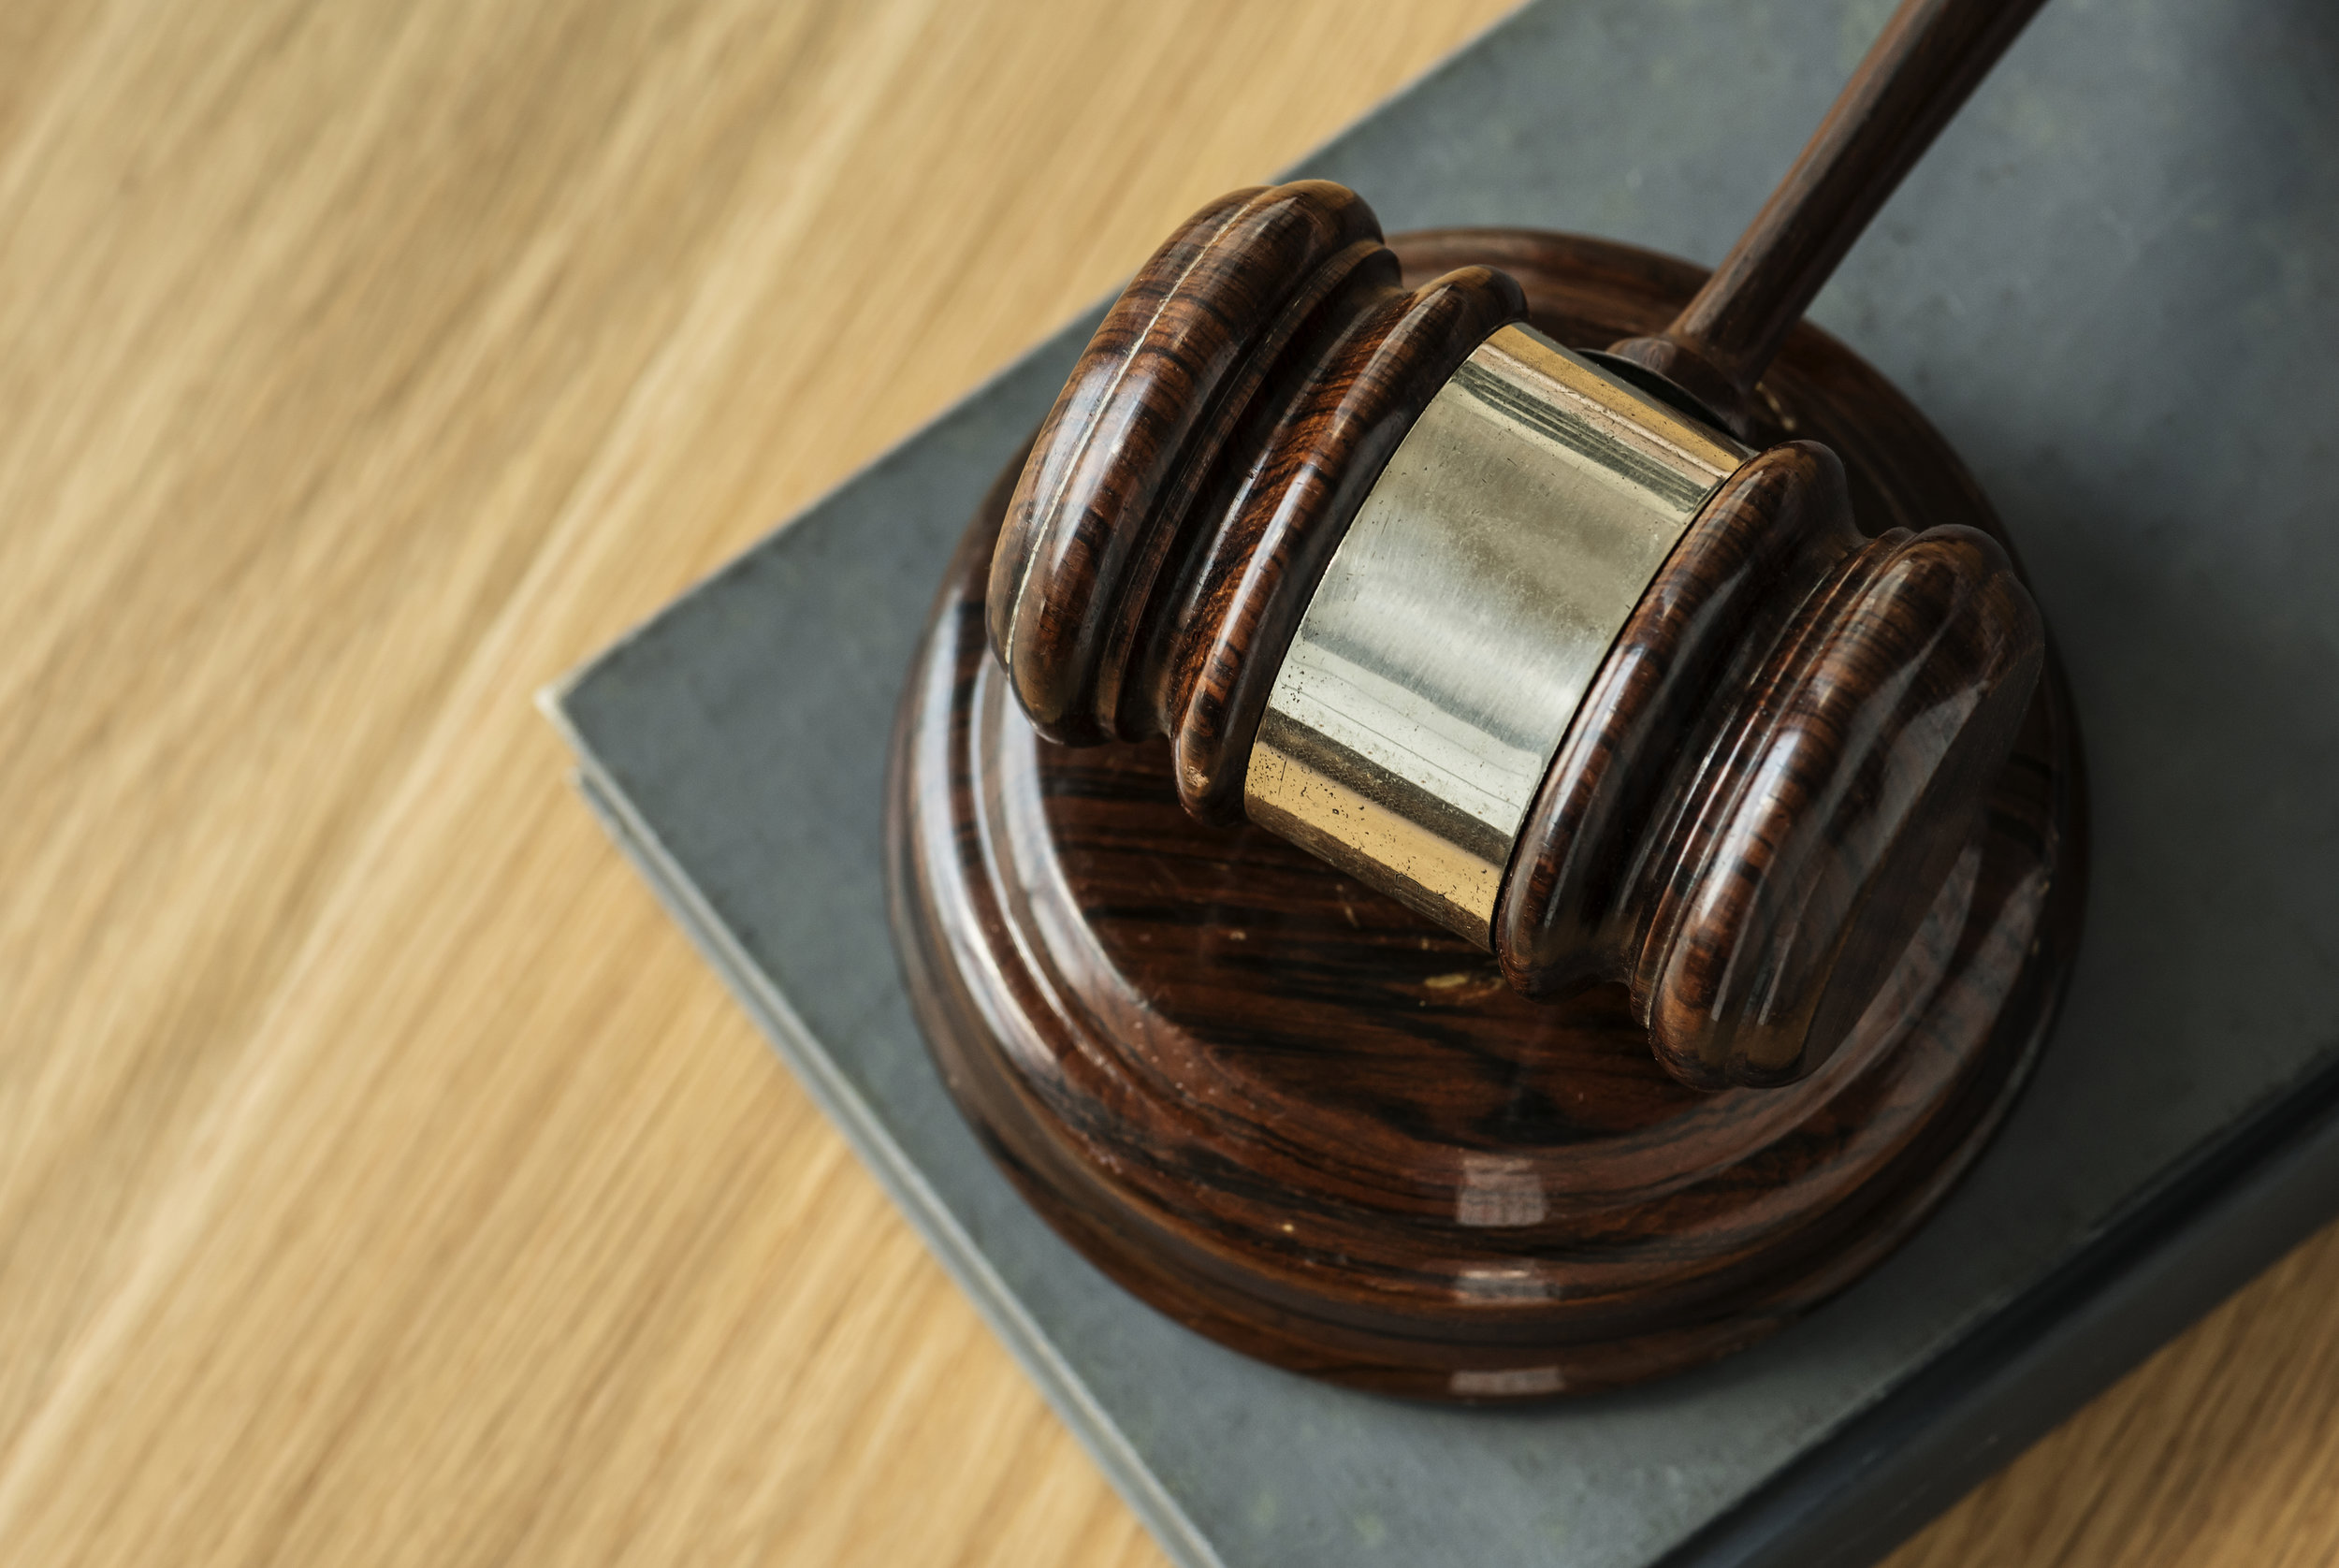 Criminal Procedure Law - In an effort to promote awareness, this project was developed four development workshops, each considering a major stage of the criminal process for study and review.